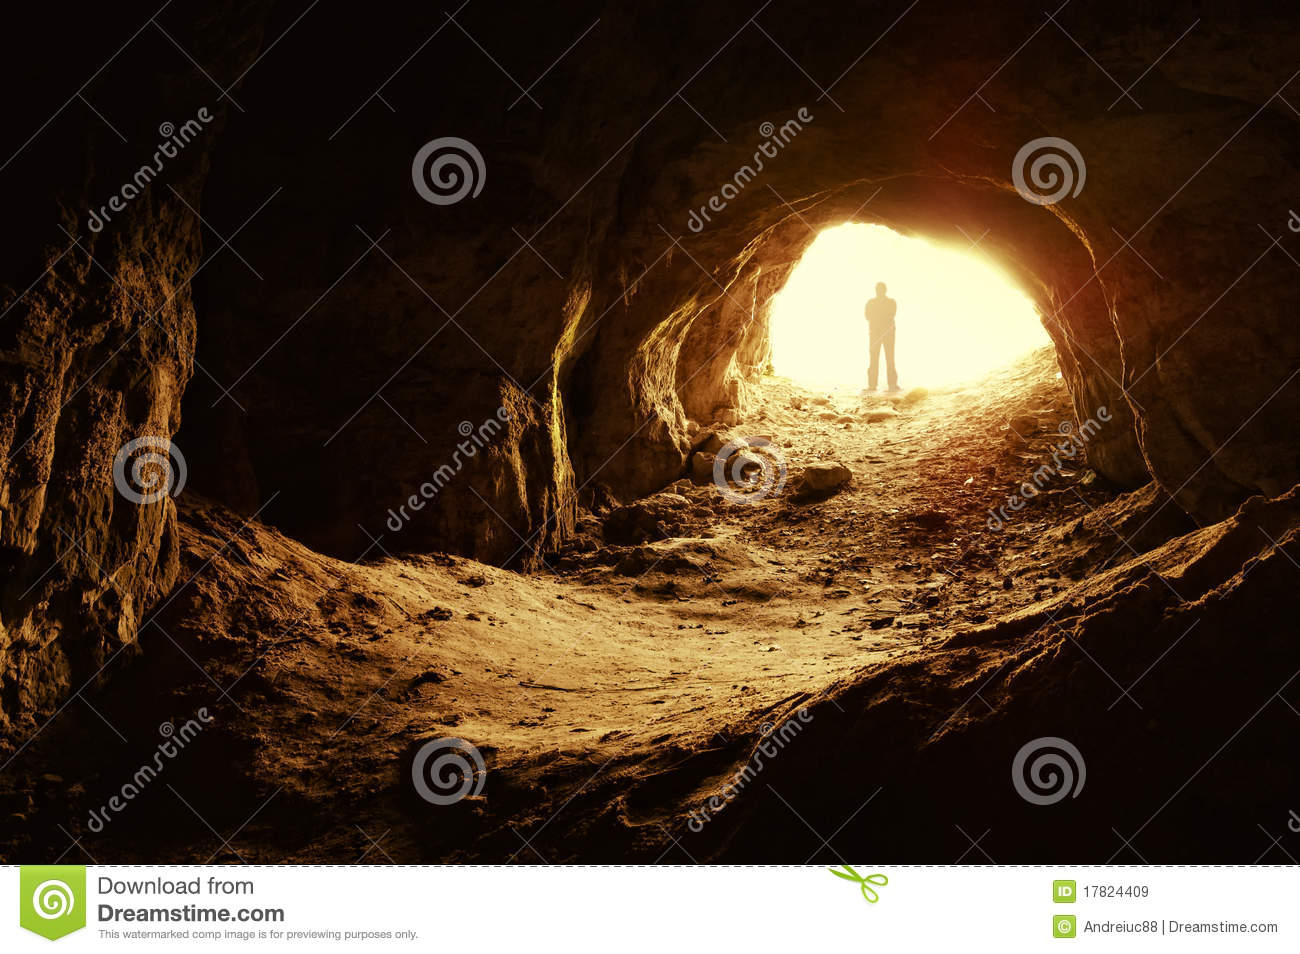 Man standing in front of a cave entrance